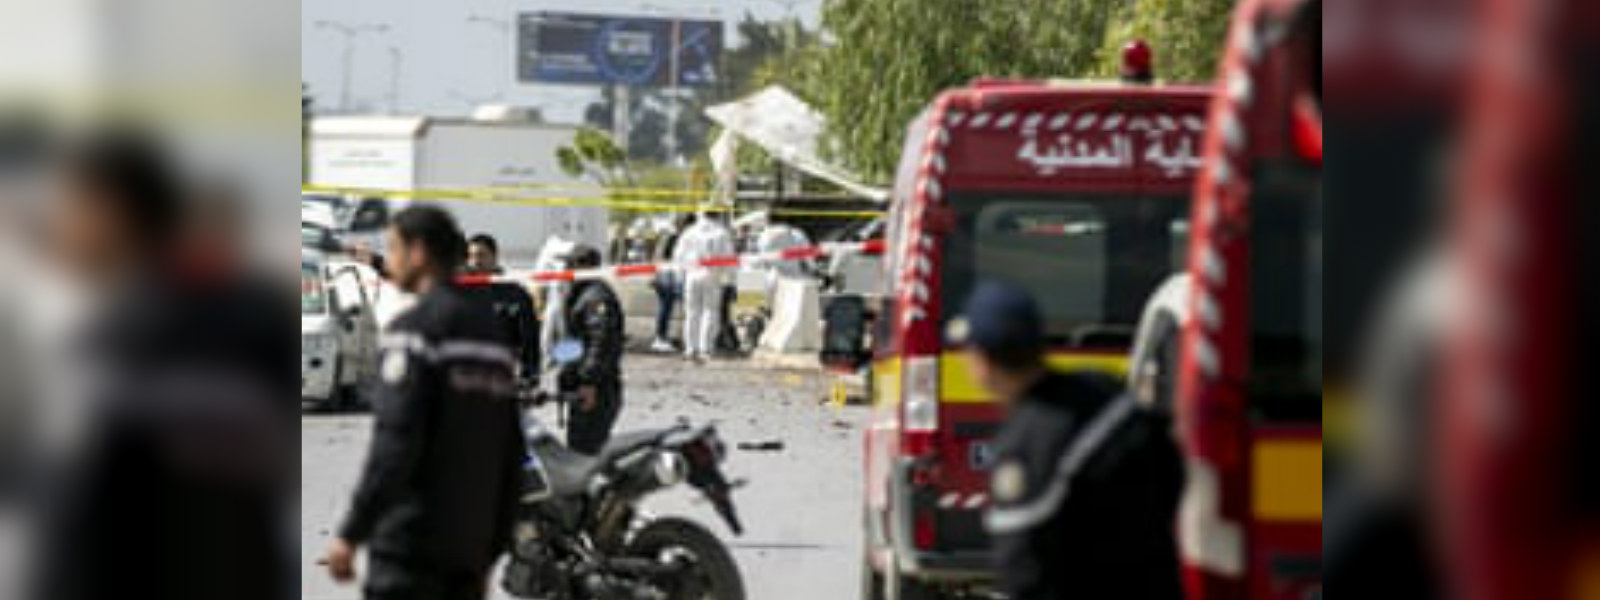 Five wounded in suicide blast near U.S. embassy in Tunis